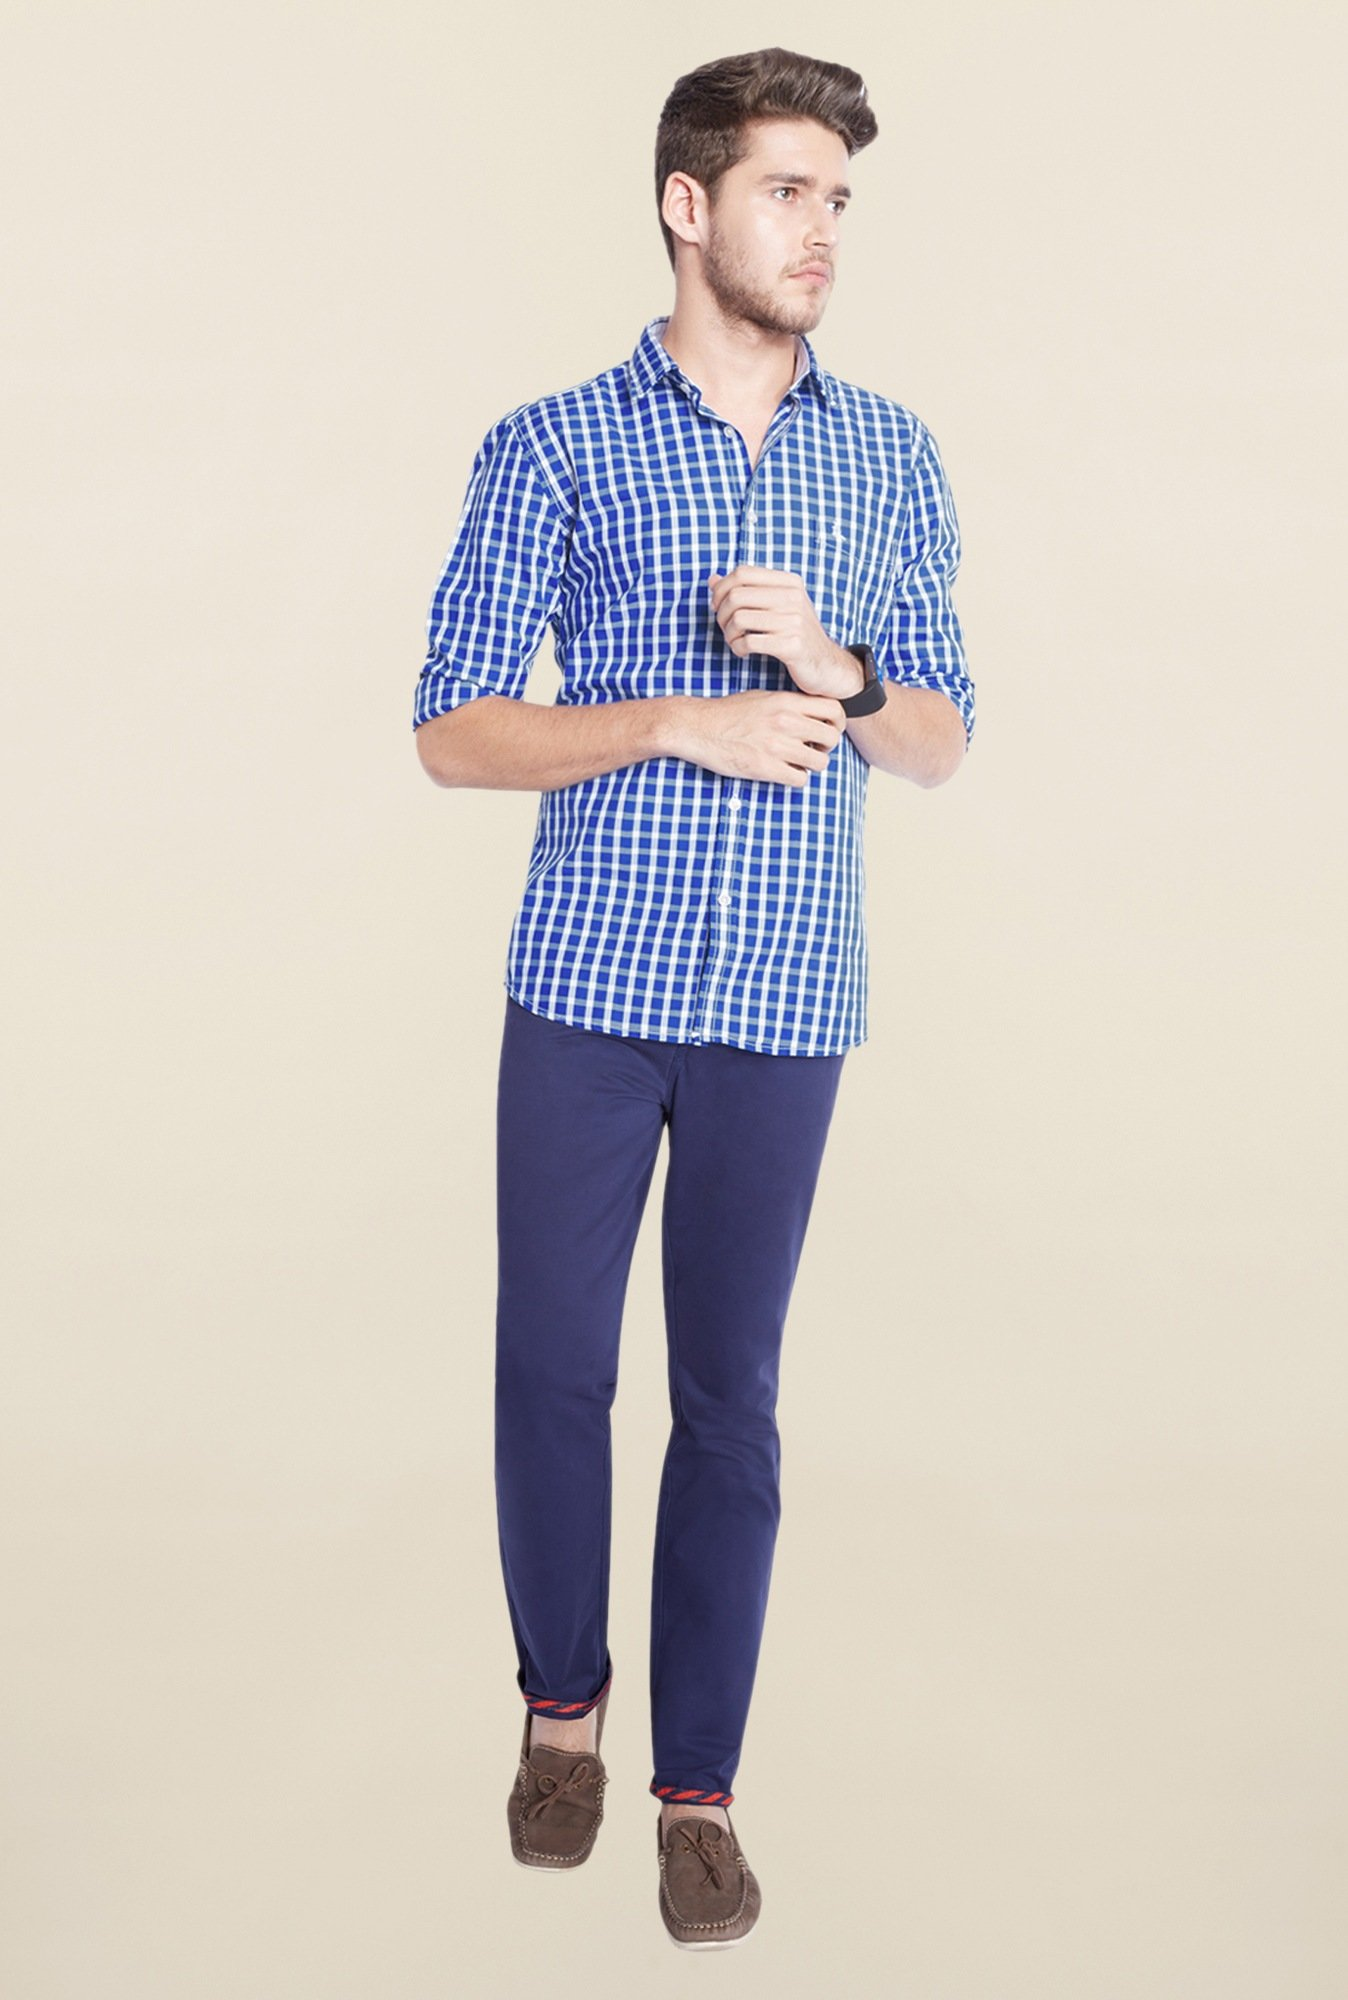 Parx Blue & White Checks Shirt